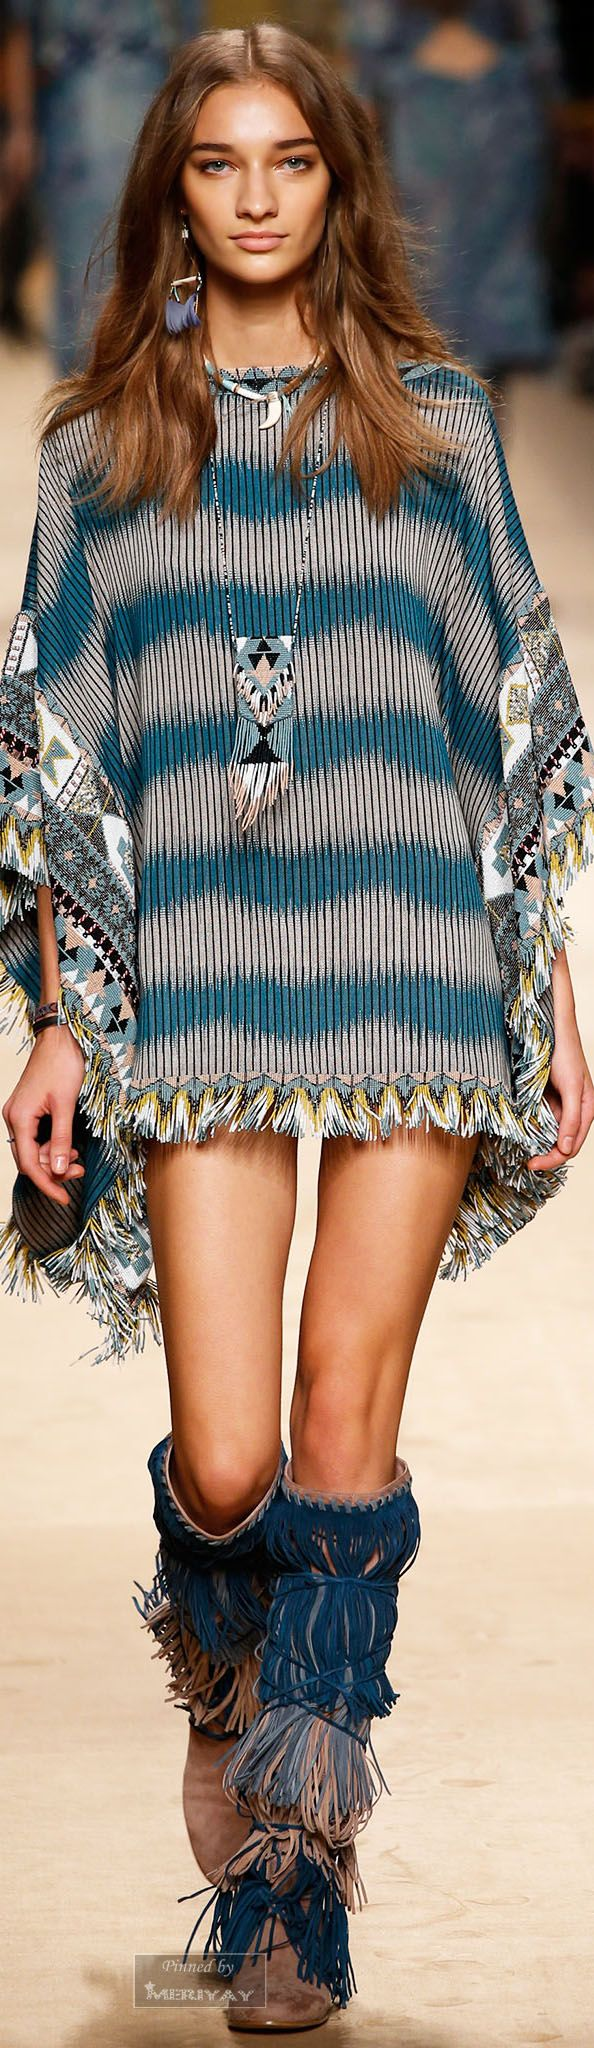 Etro.Spring 2015.Tunic in Autumn styling. Boots!!!